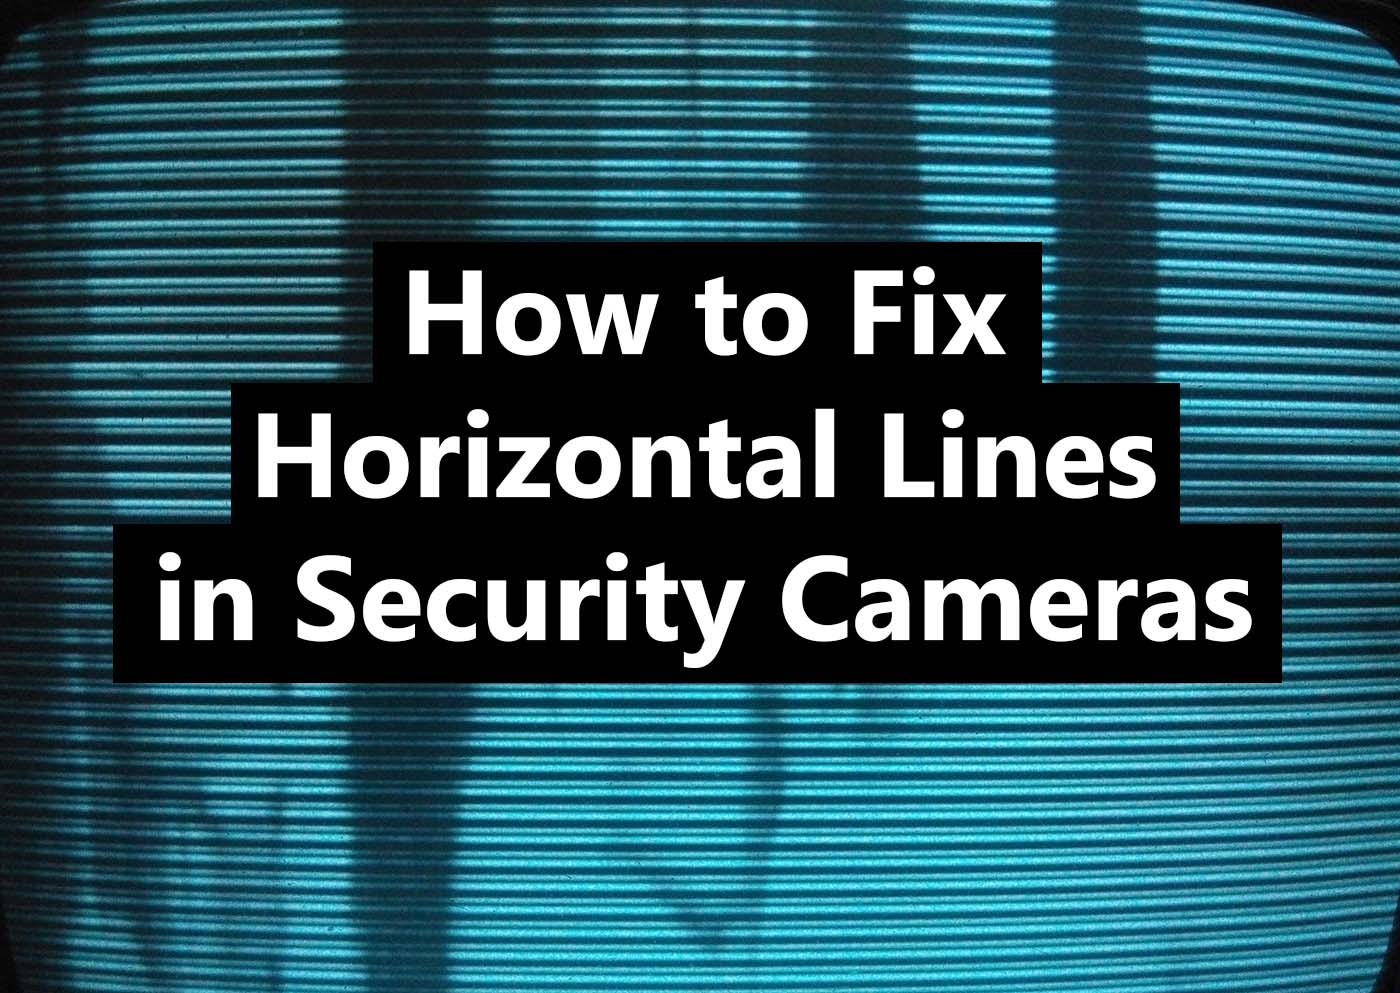 How To Fix Horizontal Lines on Security Cameras